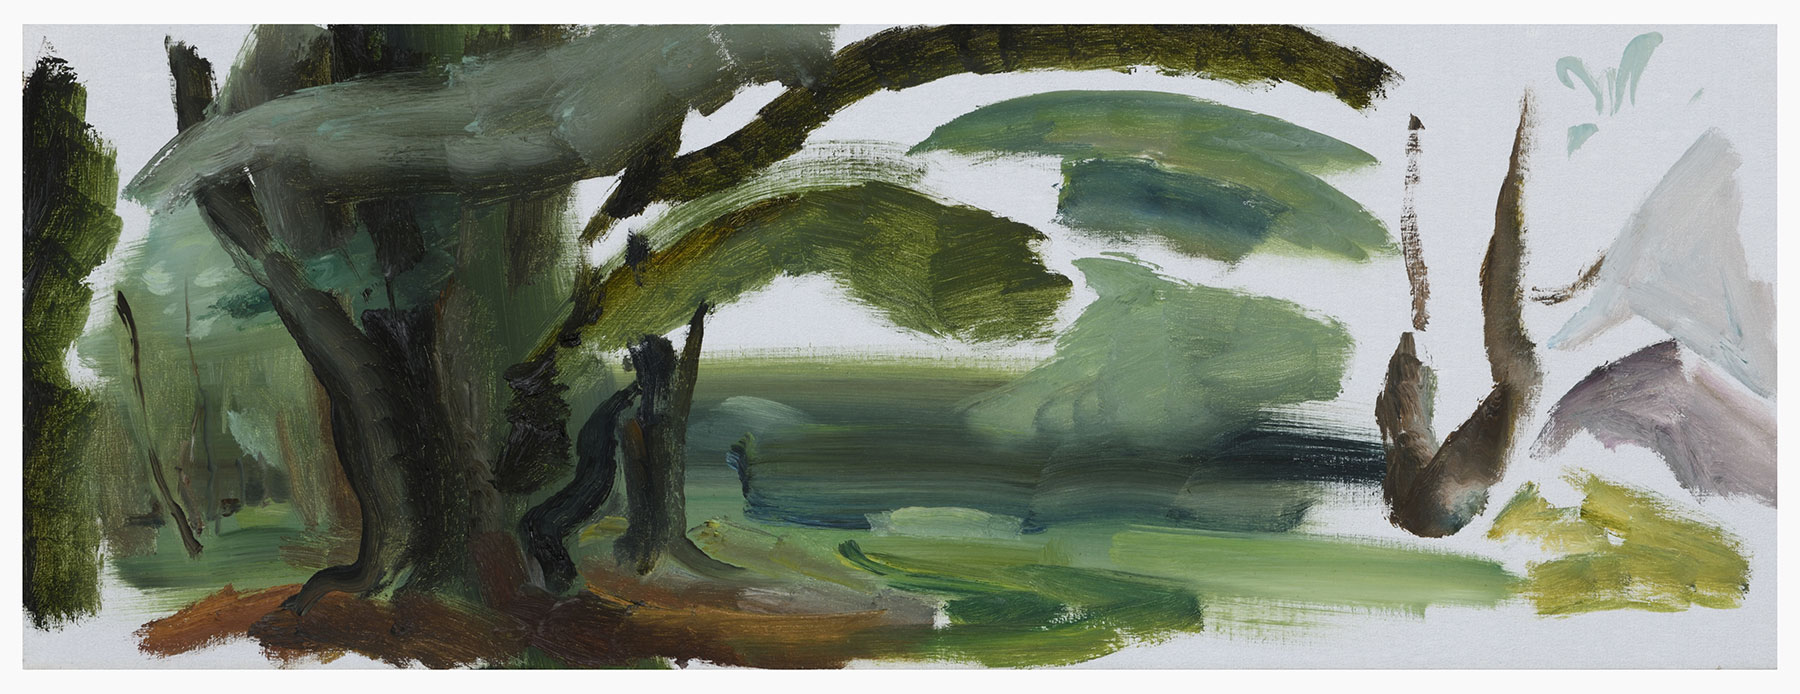 Tegleaze Woods, 1985, 40.5 x 109 cm, oil on canvas